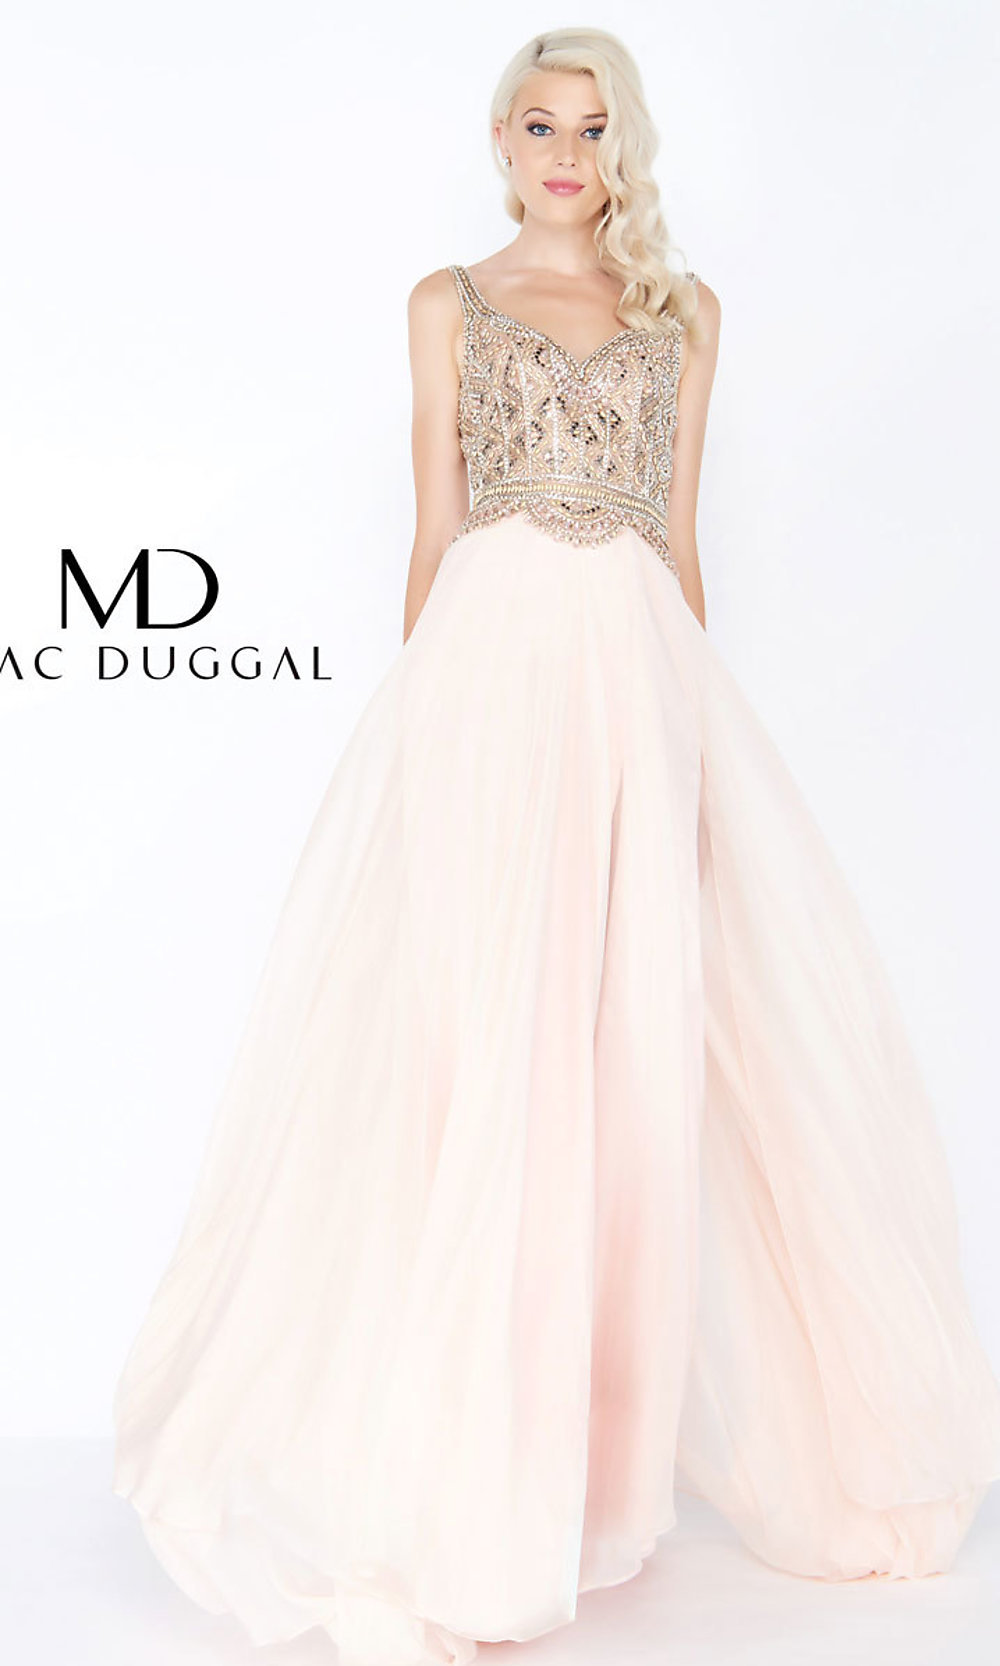 abd50d17dc0 Long Sleeveless Chiffon Prom Dress by Mac Duggal